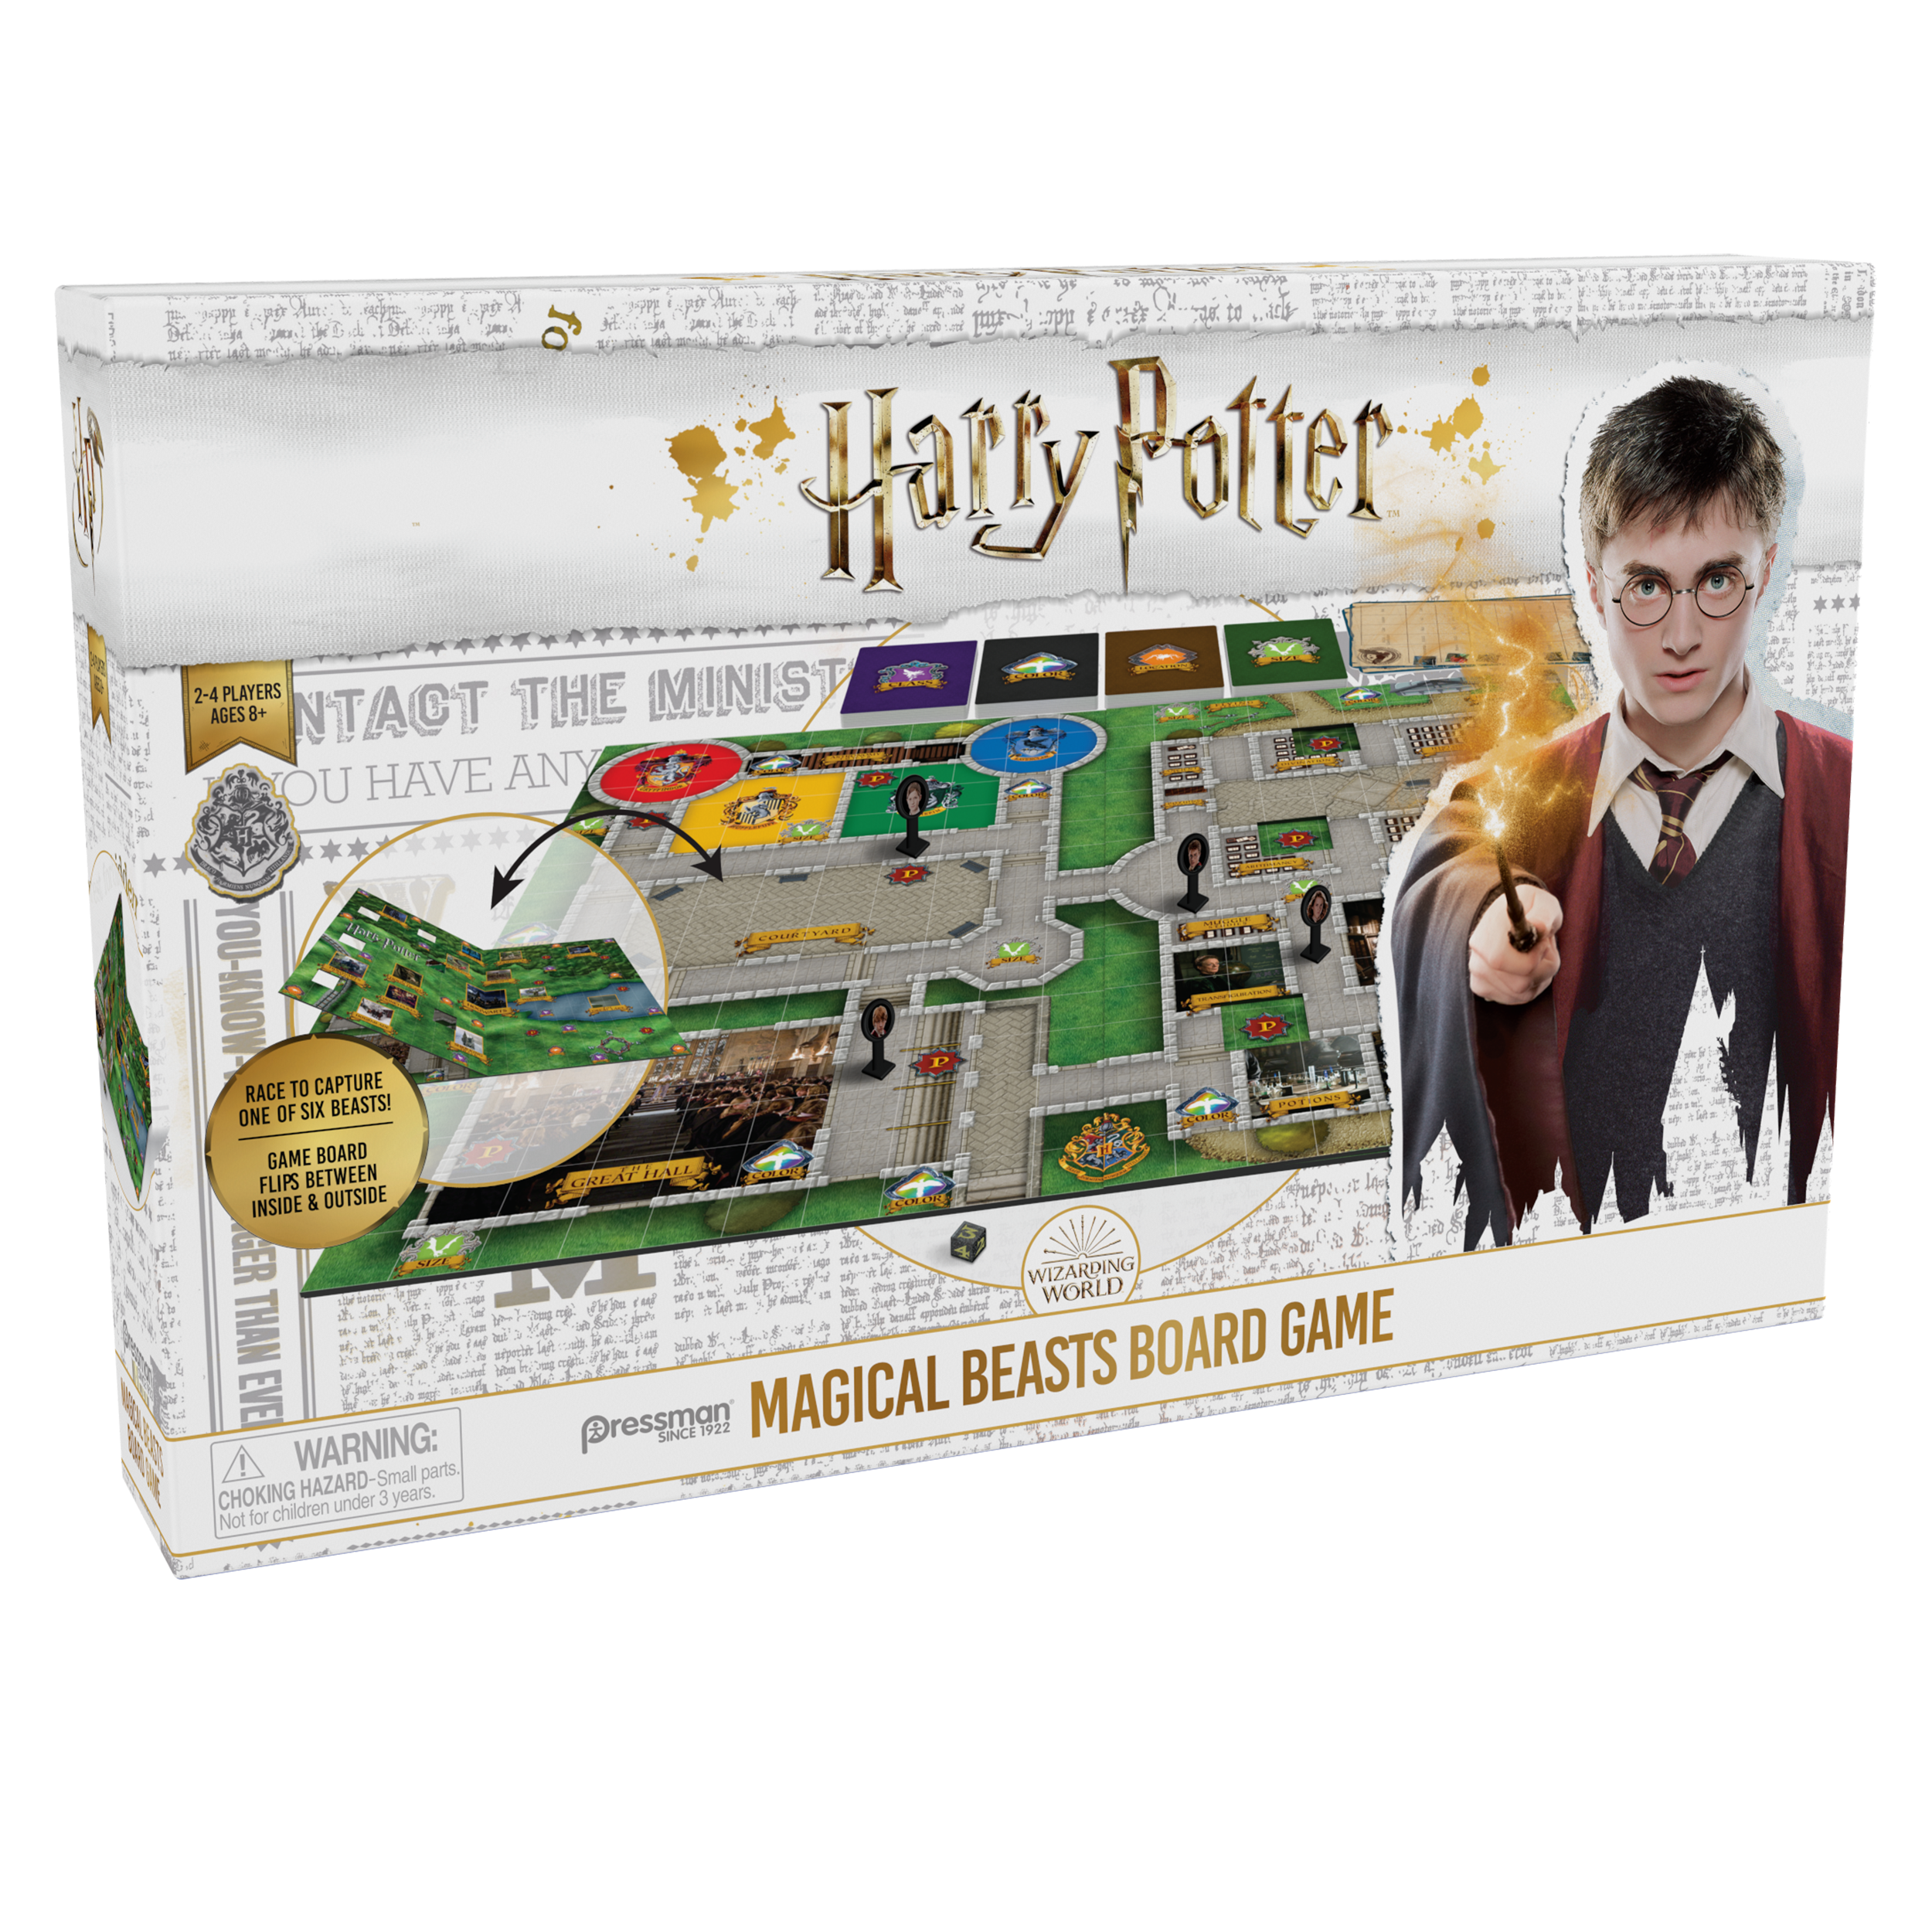 Harry Potter - Magic Beasts Game (70071)